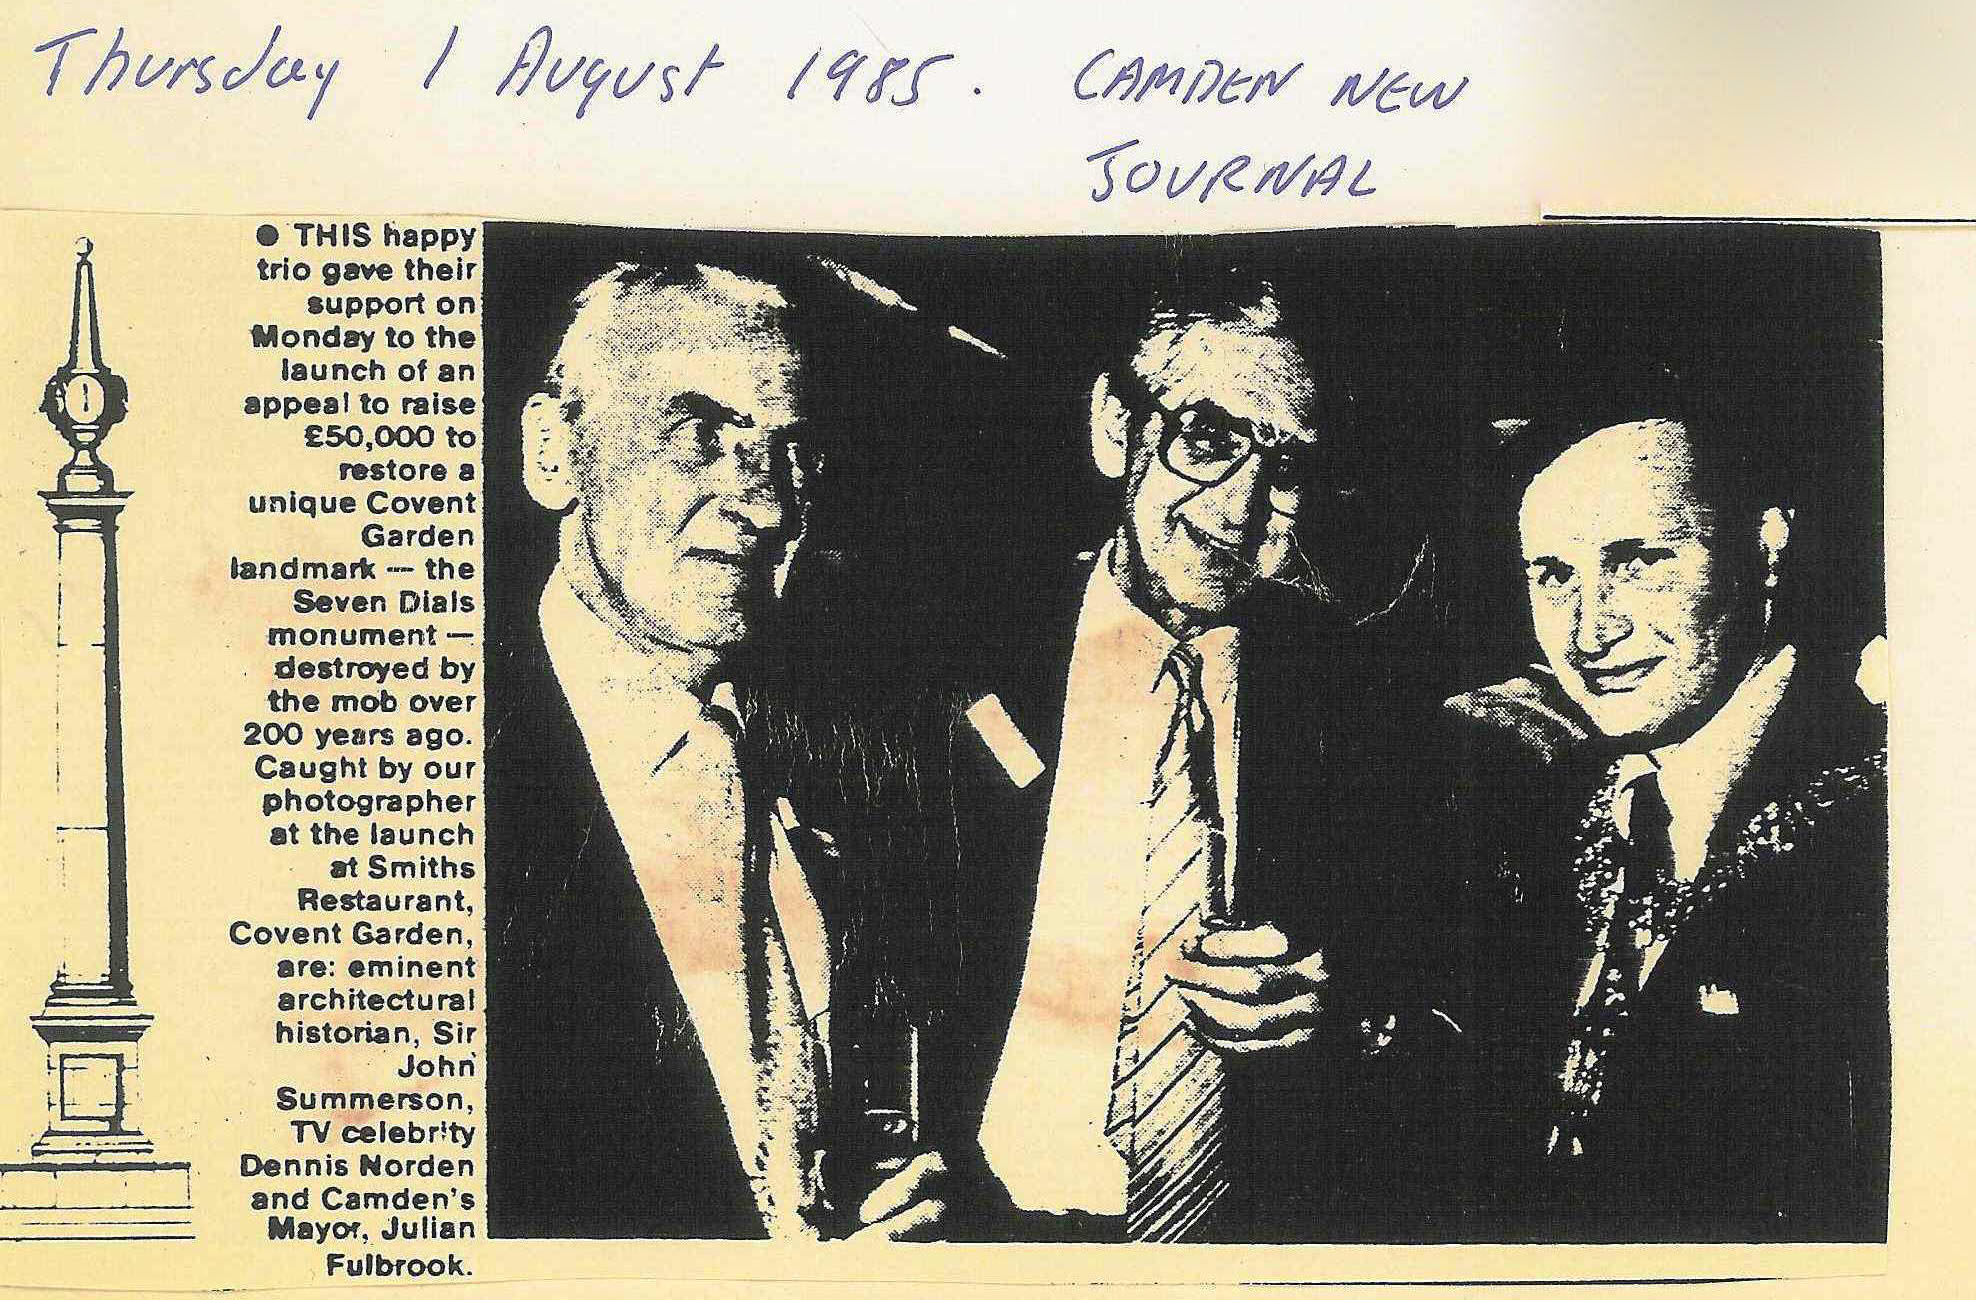 01 Aug. 1985 � Camden New Journal: This happy trio gave their support.